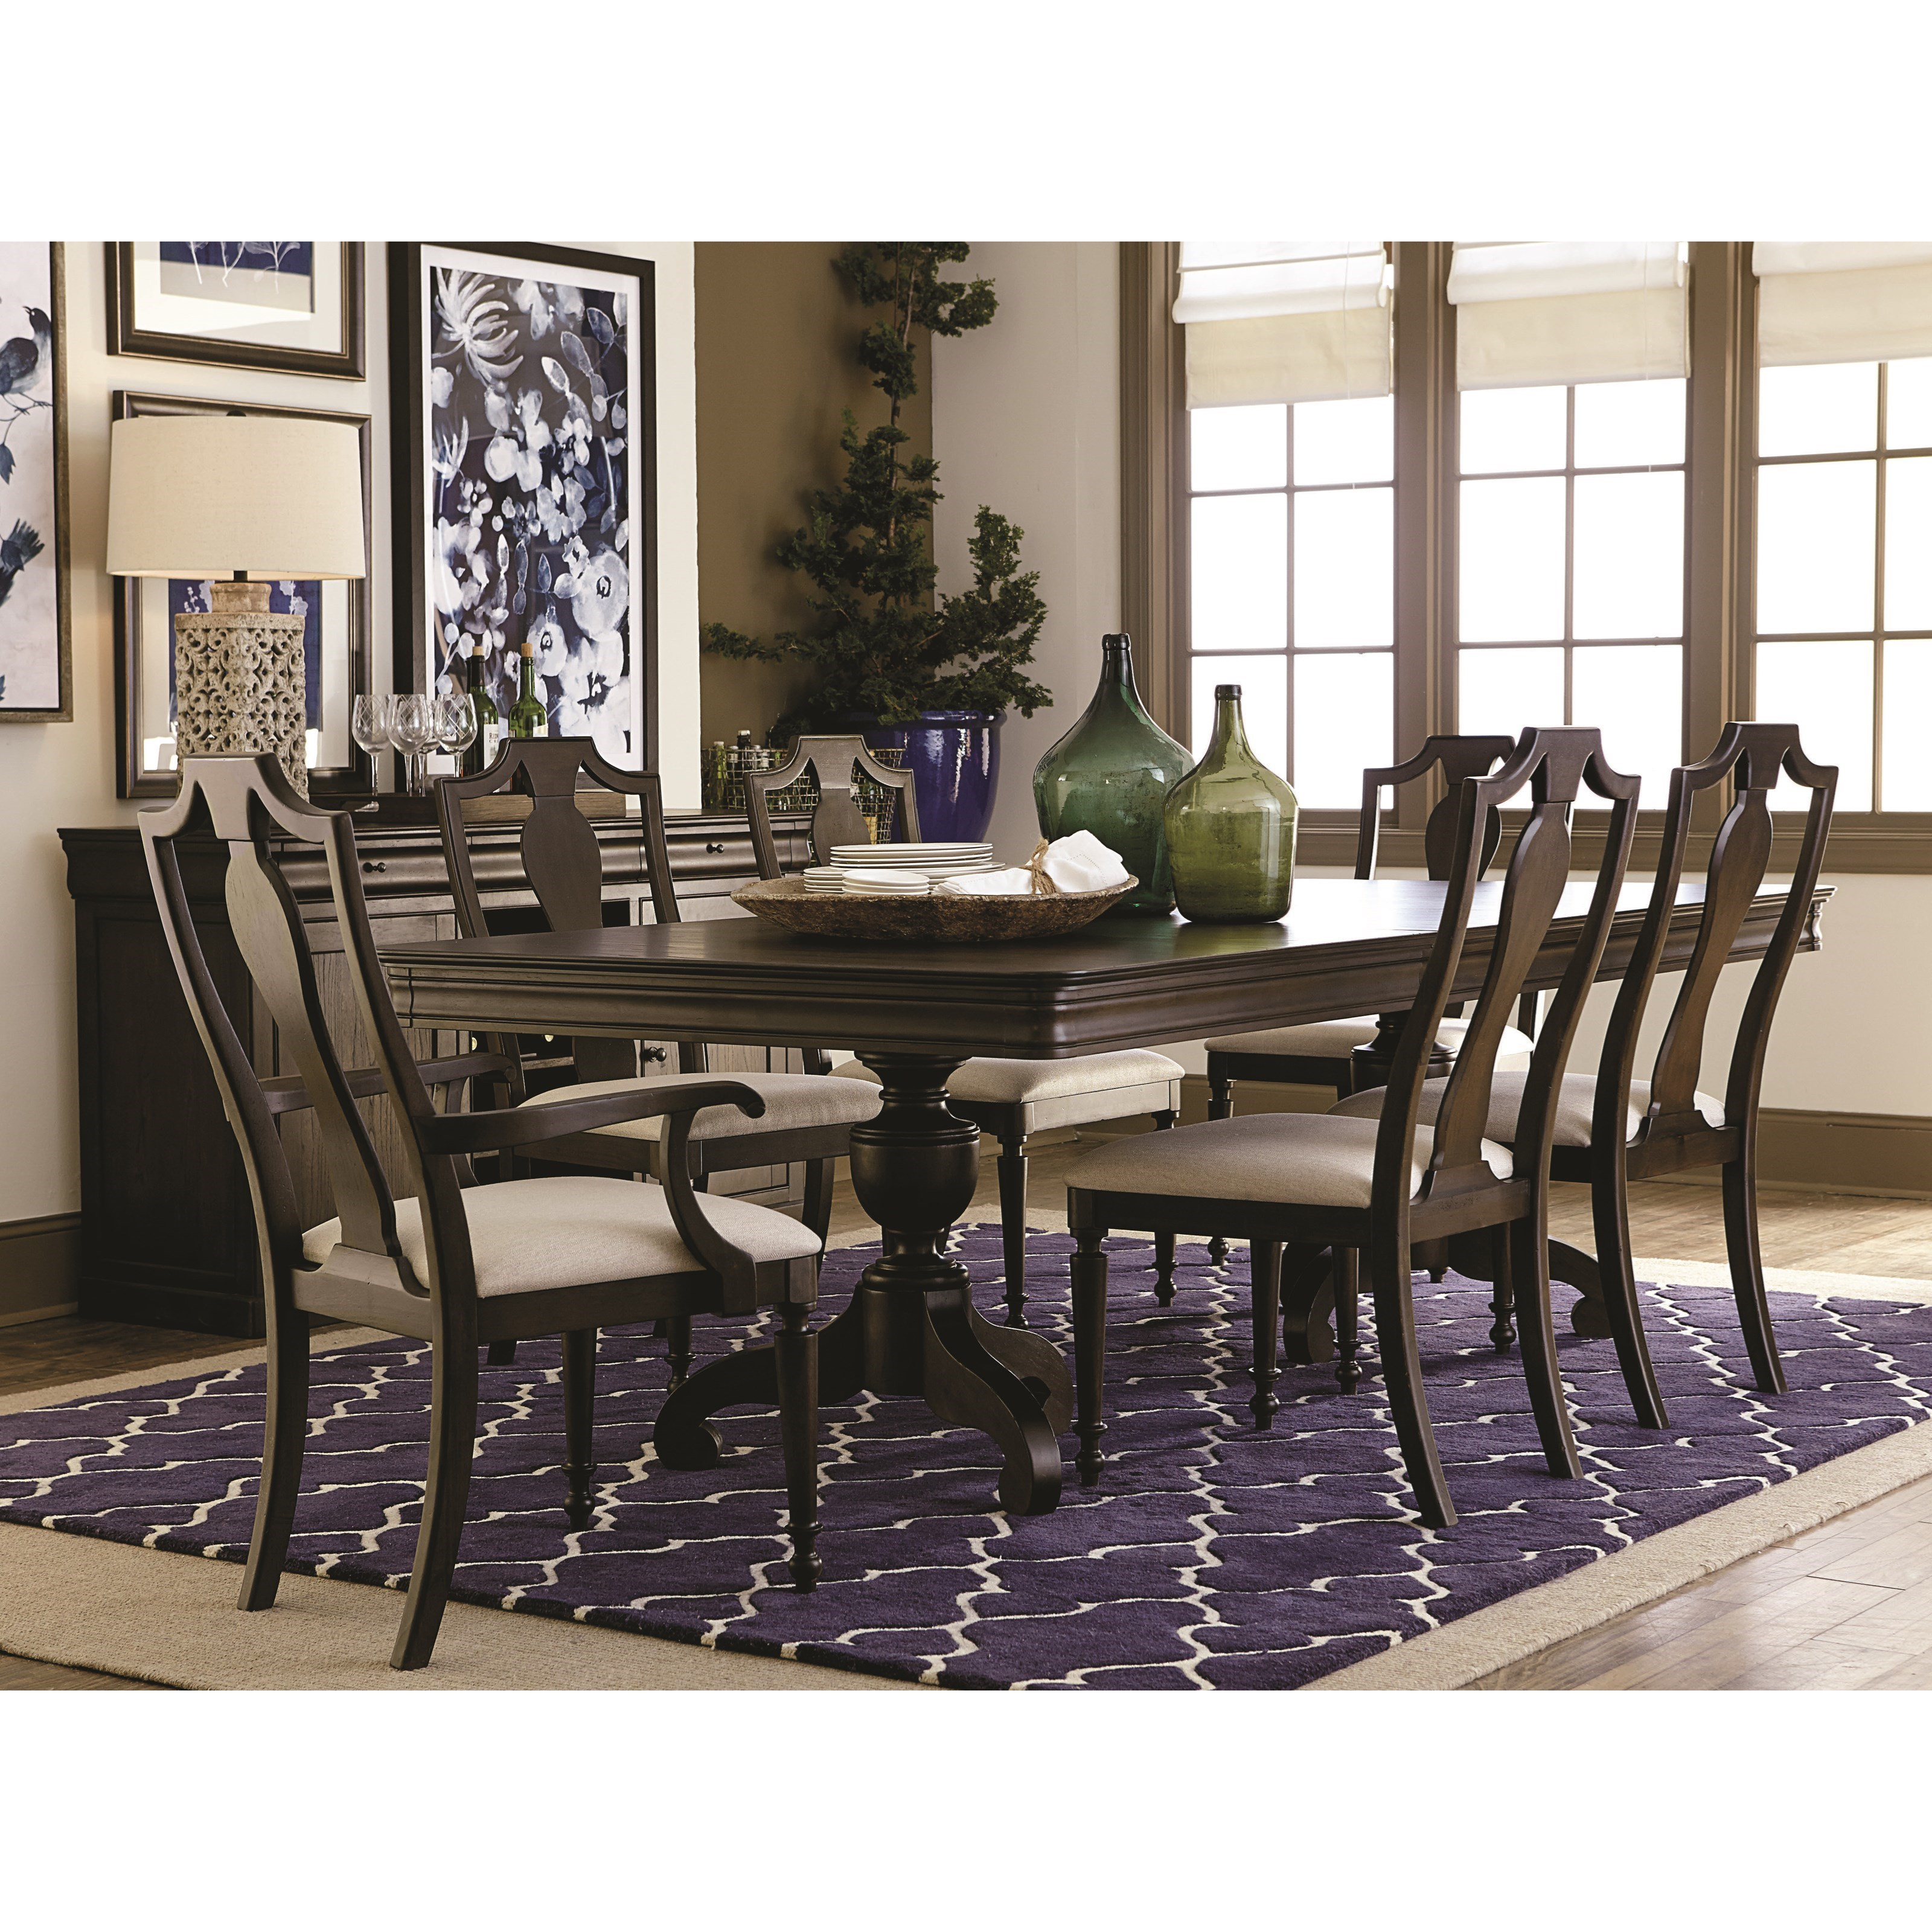 Basset Dining Room Bassett Provence Formal Dining Room Table And Chair Set